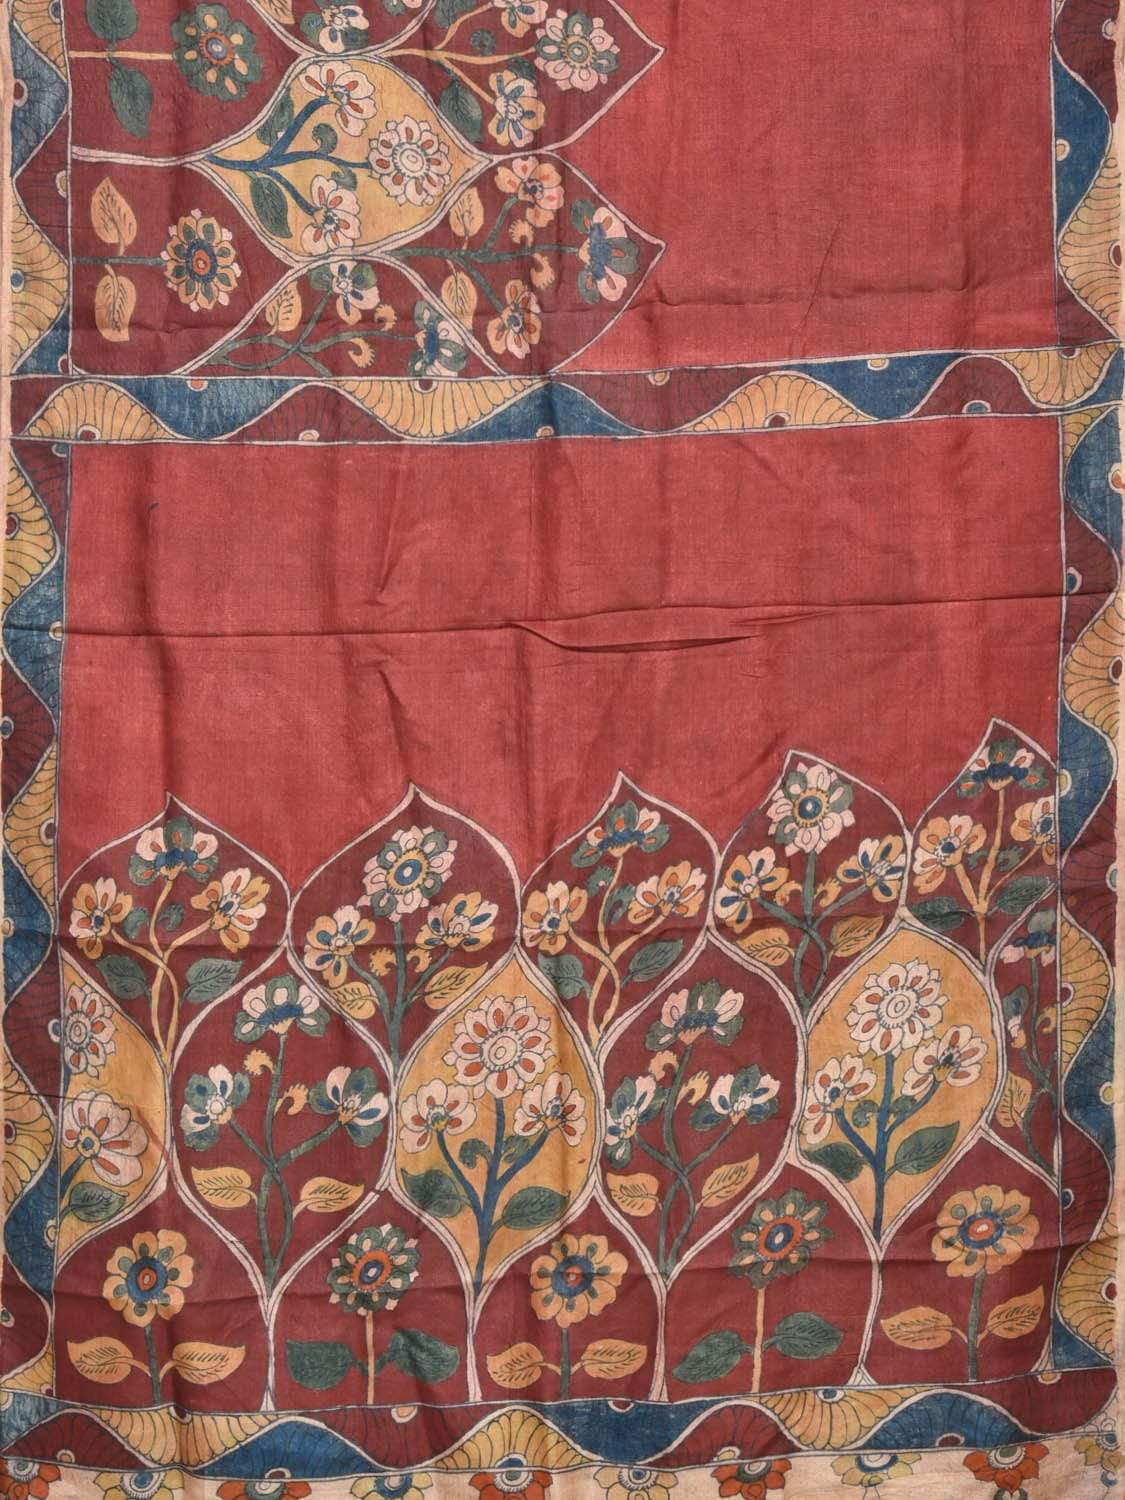 Red Kalamkari Hand Painted Tussar Handloom Saree with Flower Palnts Border Design KL0197